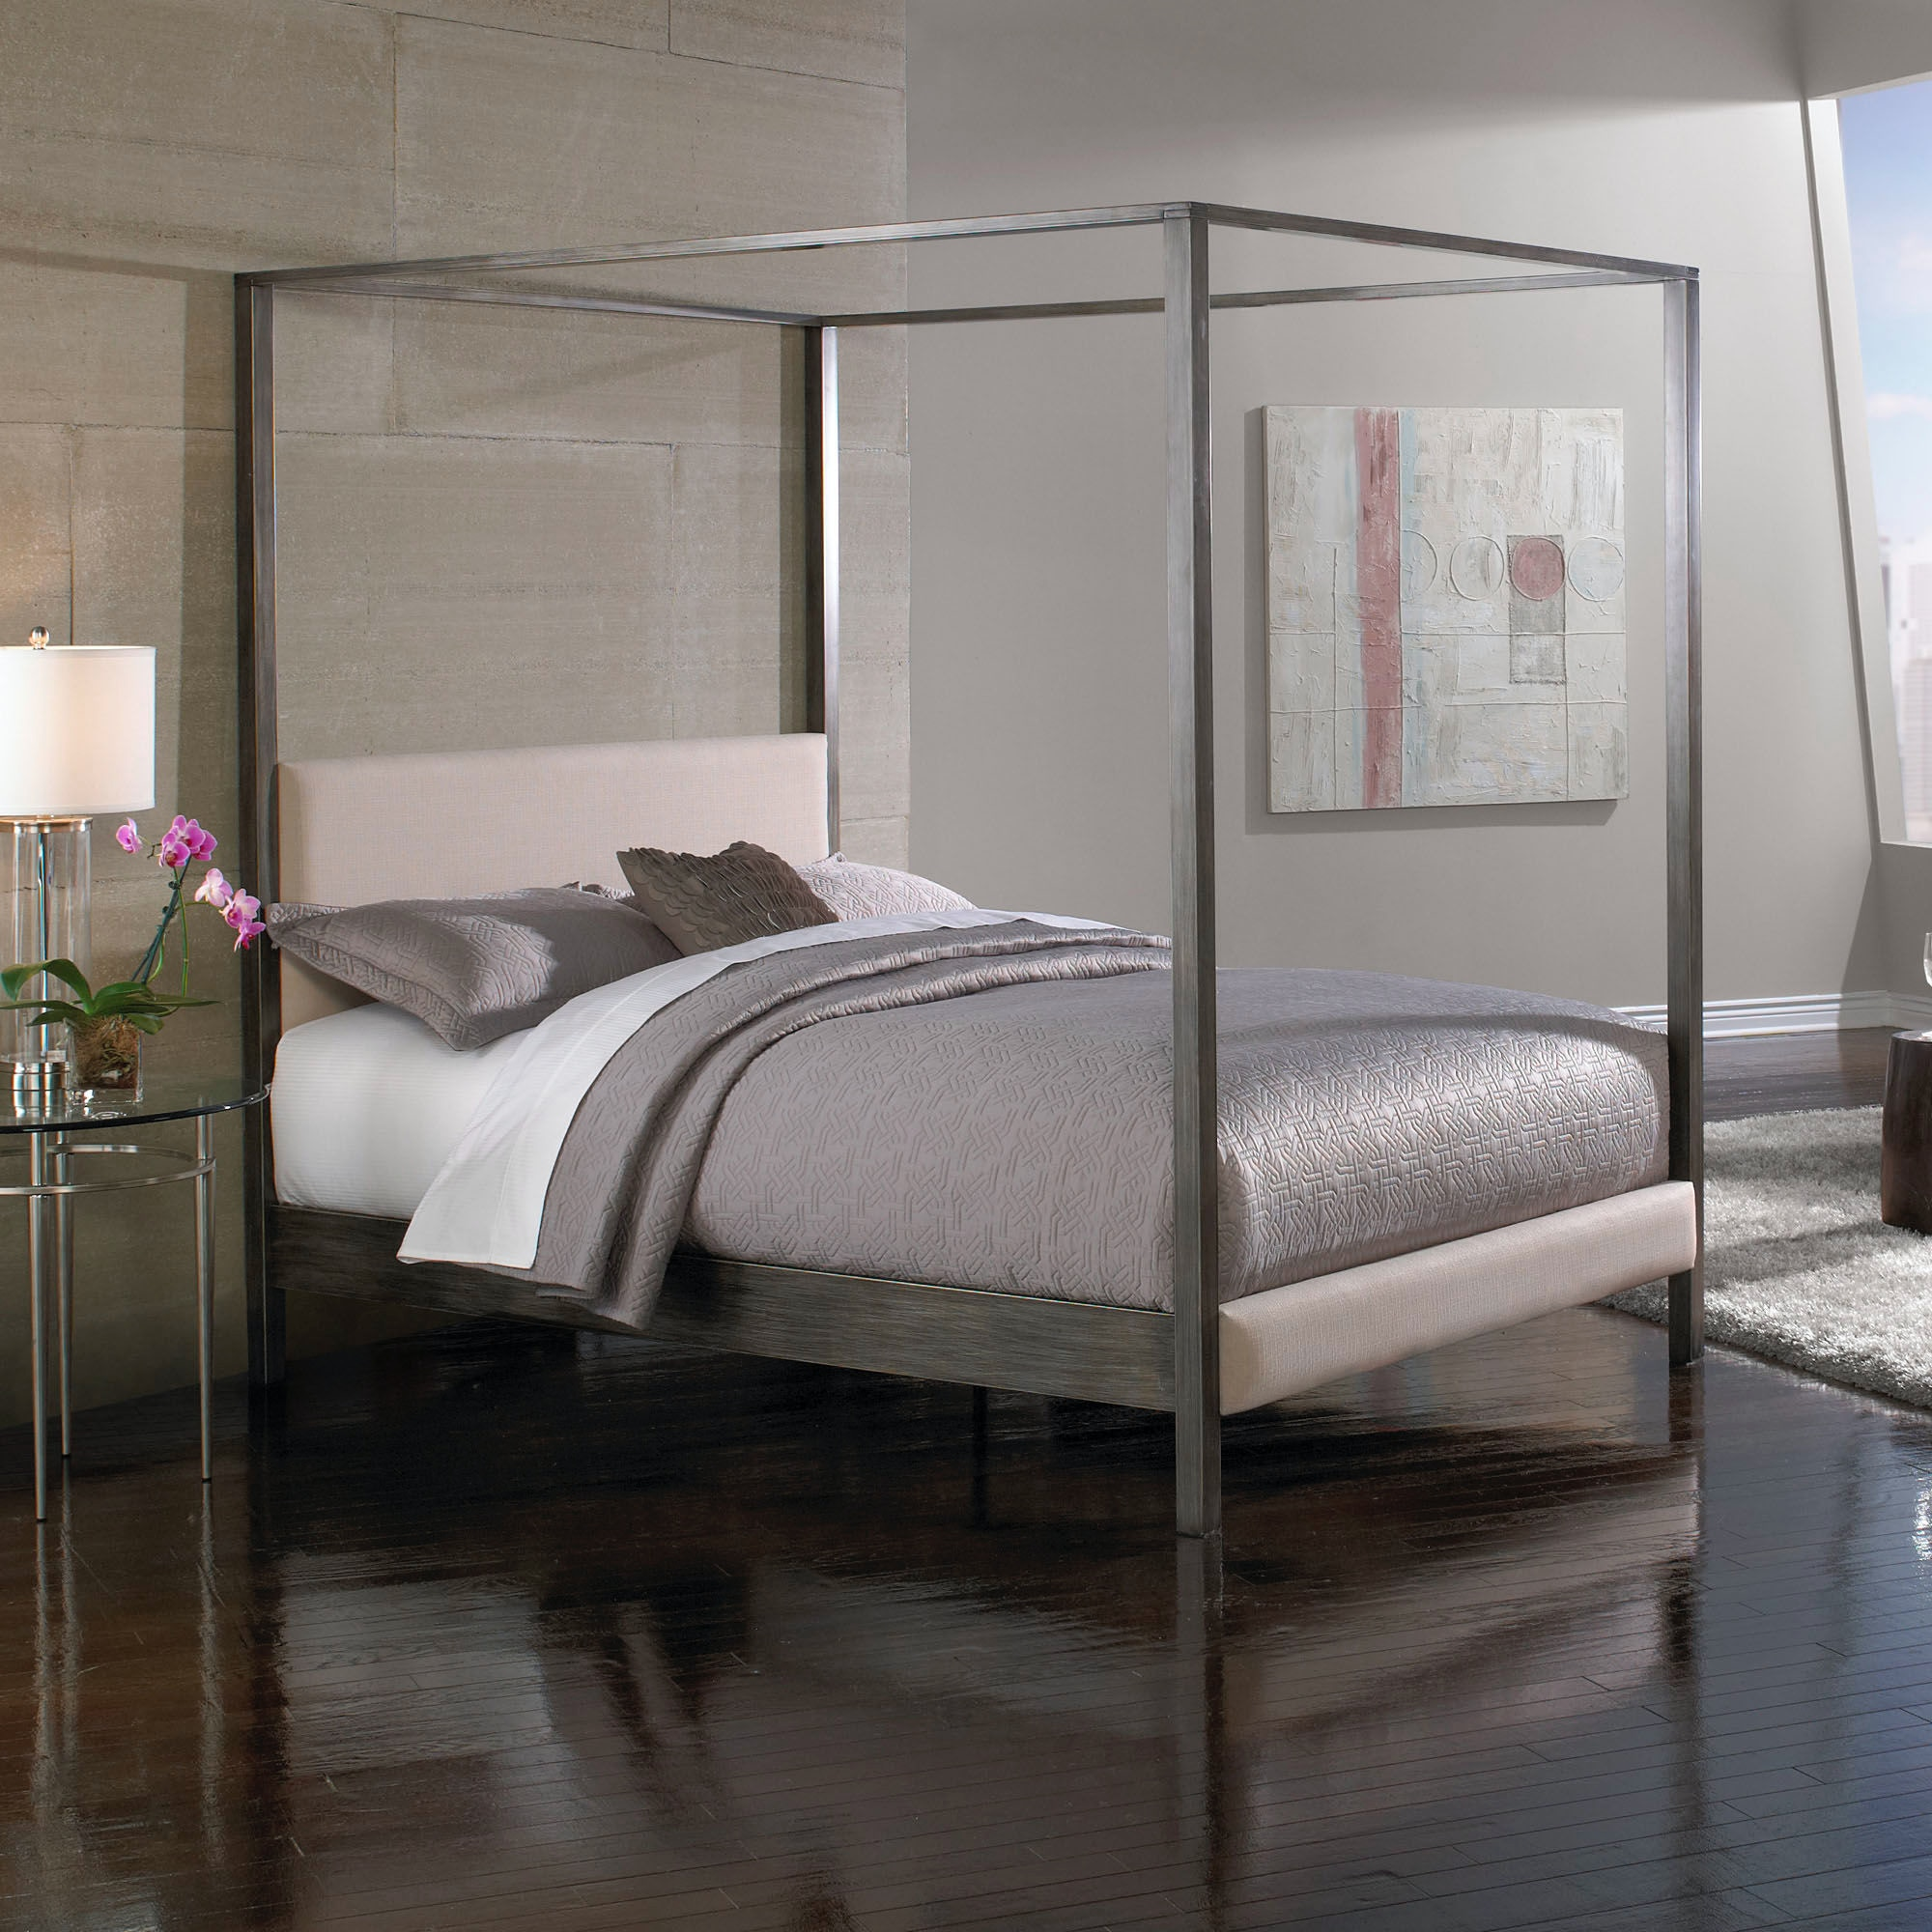 Fashion Bed Group Avalon 6/6 King Canopy Bed B71626  sc 1 st  Jensen Furniture & Fashion Bed Group Bedroom Avalon 6/6 King Canopy Bed B71626 ...